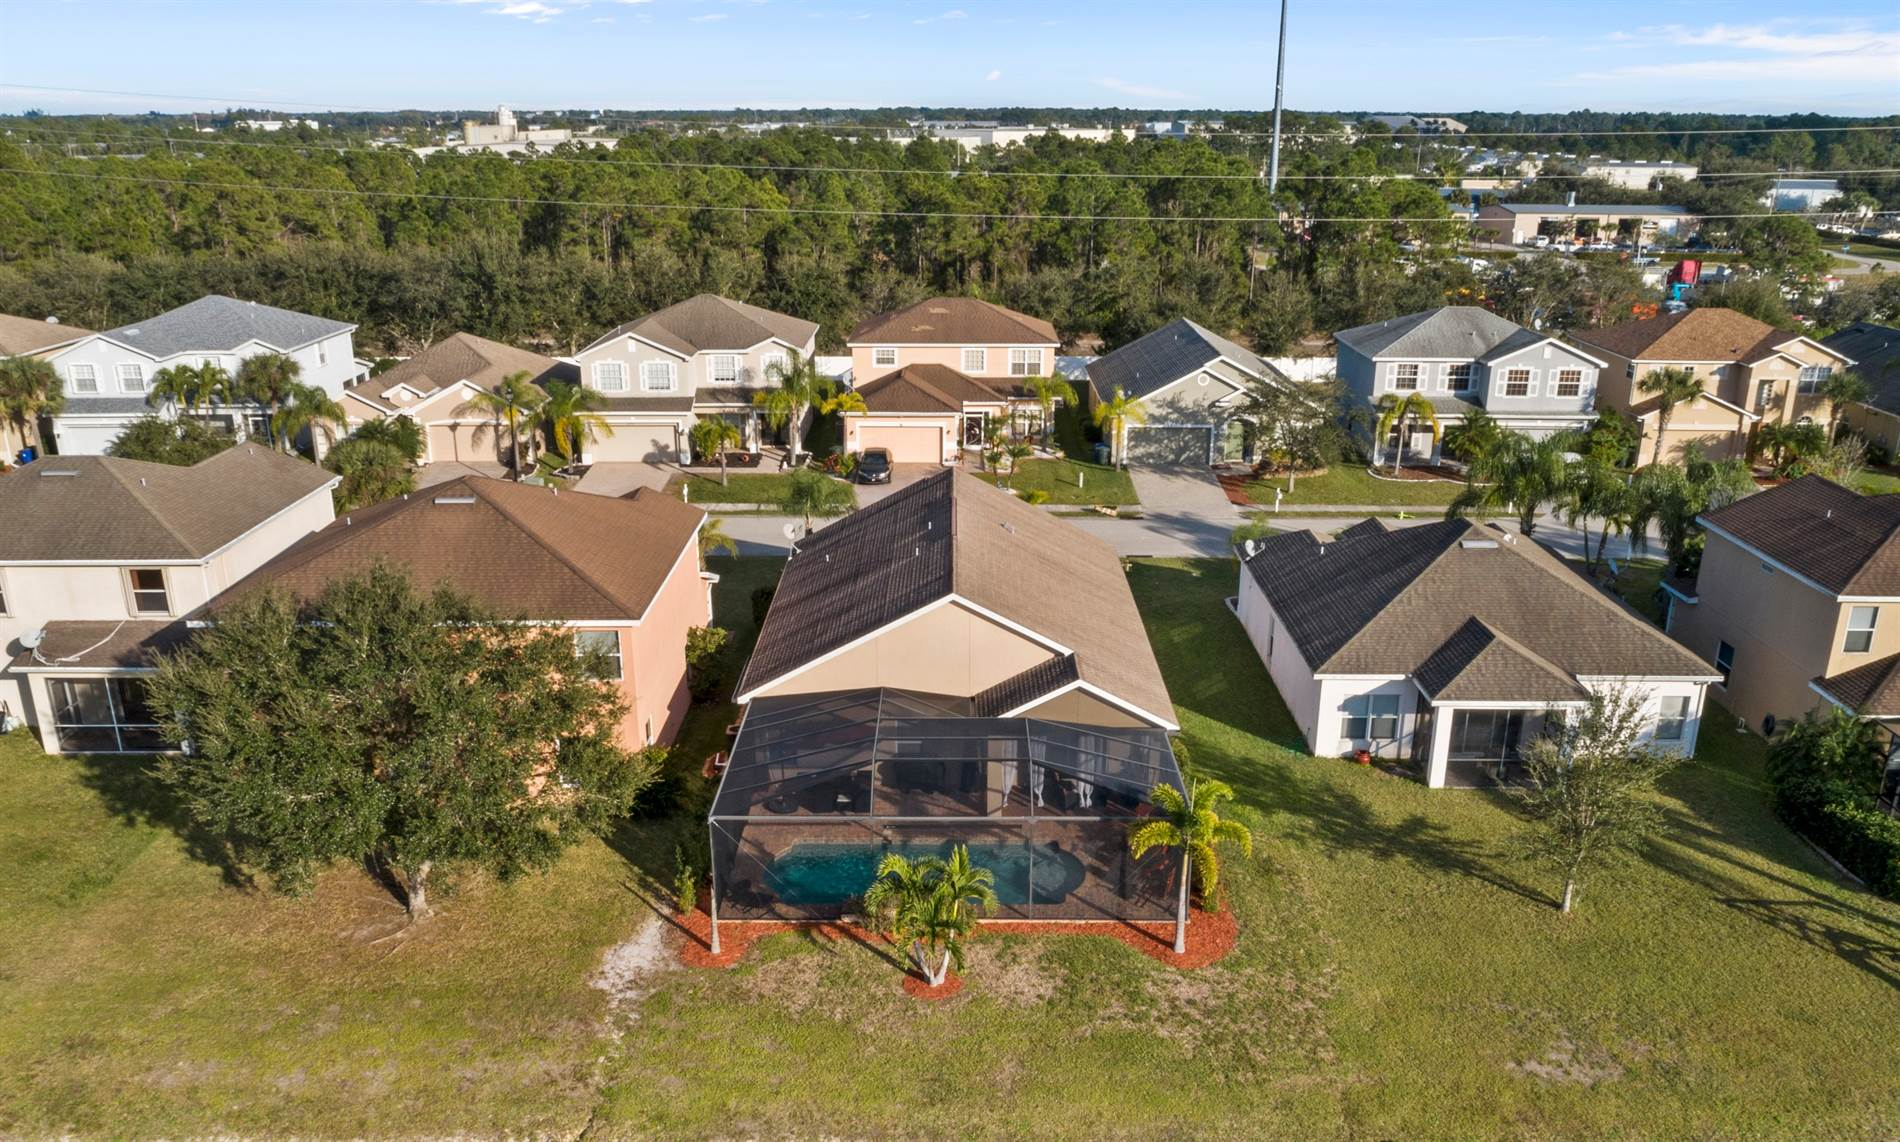 8213 Silver Birch Way, Lehigh Acres, FL 33971